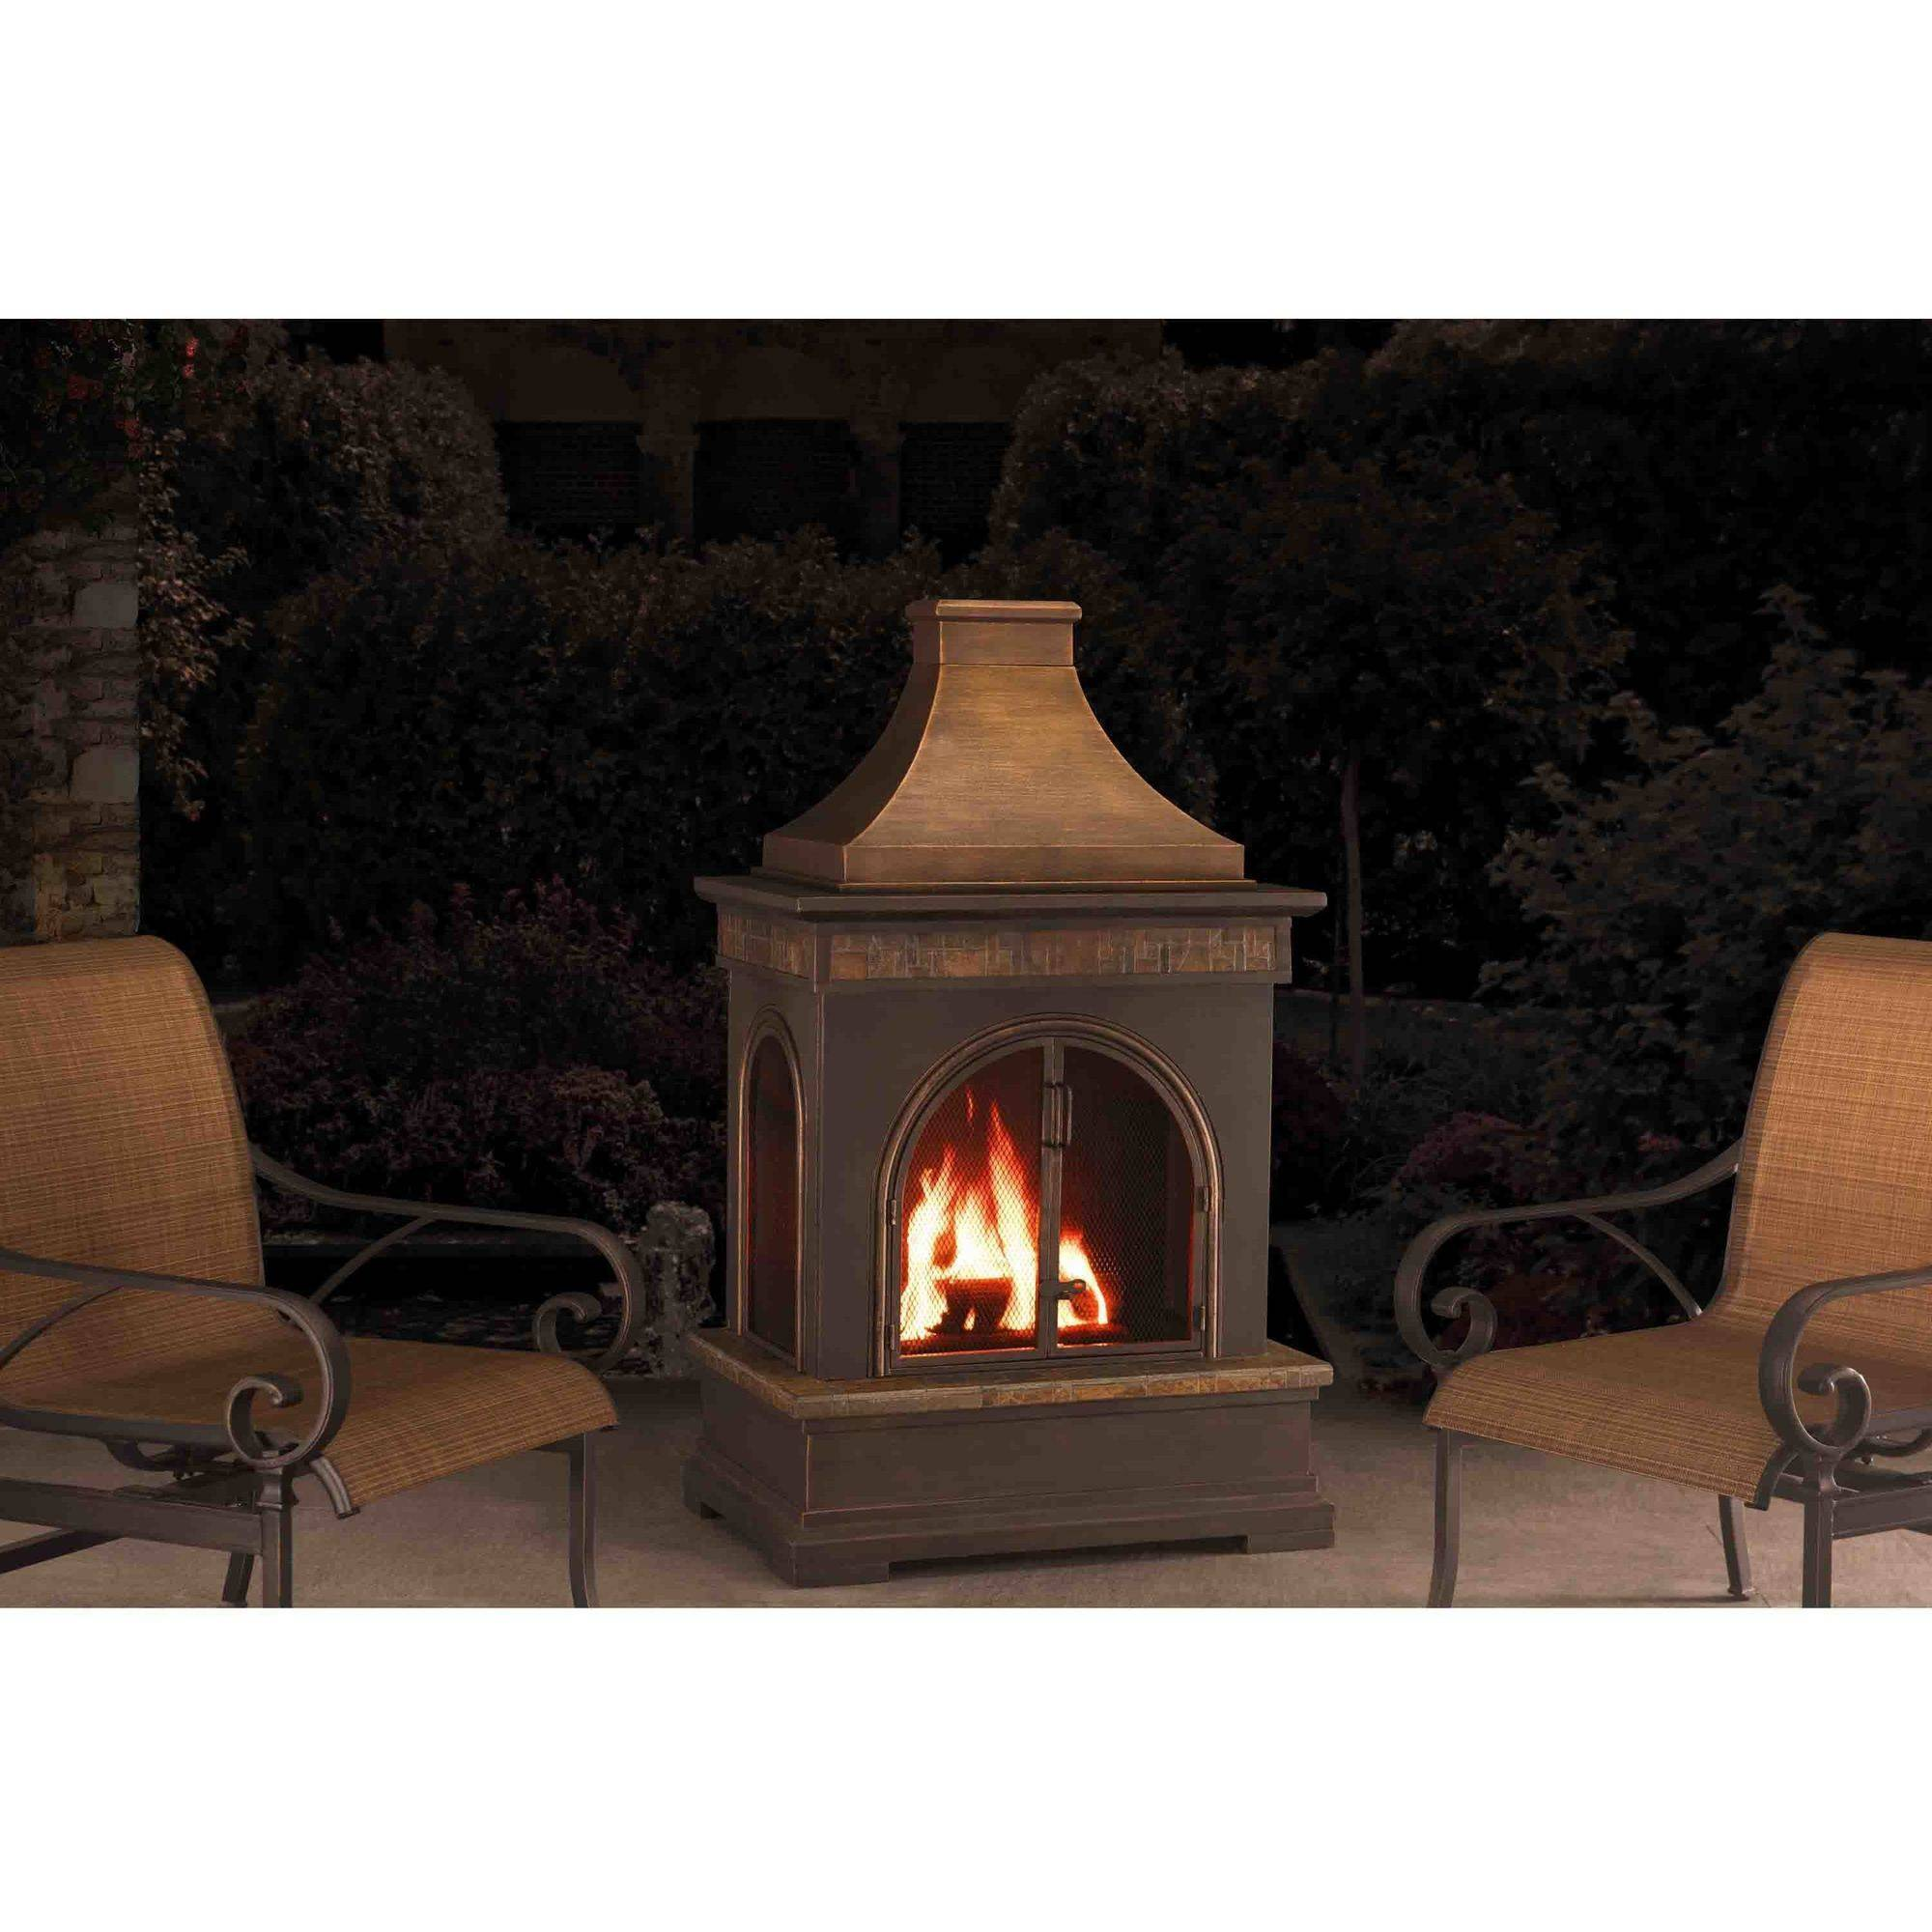 Sunjoy 110504012 Hardy 58 Slate and Steel Outdoor Fireplace by SunNest Services LLC